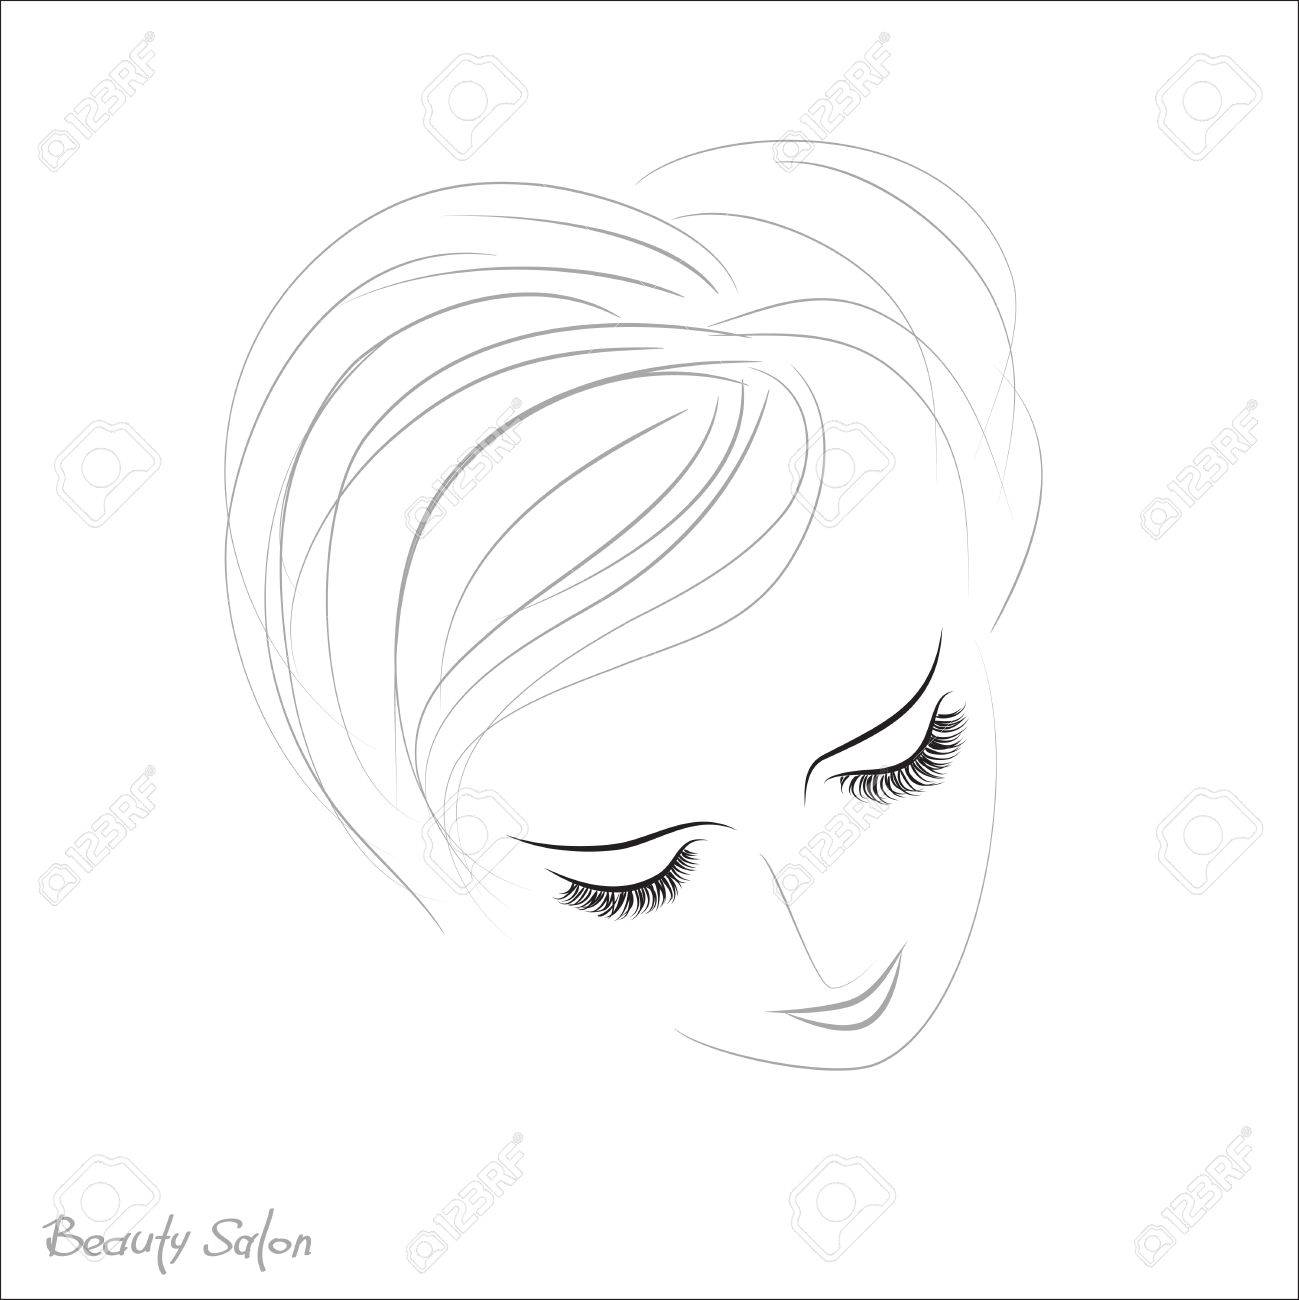 Closed Eyes With Long Eyelashes Sample Logo For A Beauty Salon Products Stock